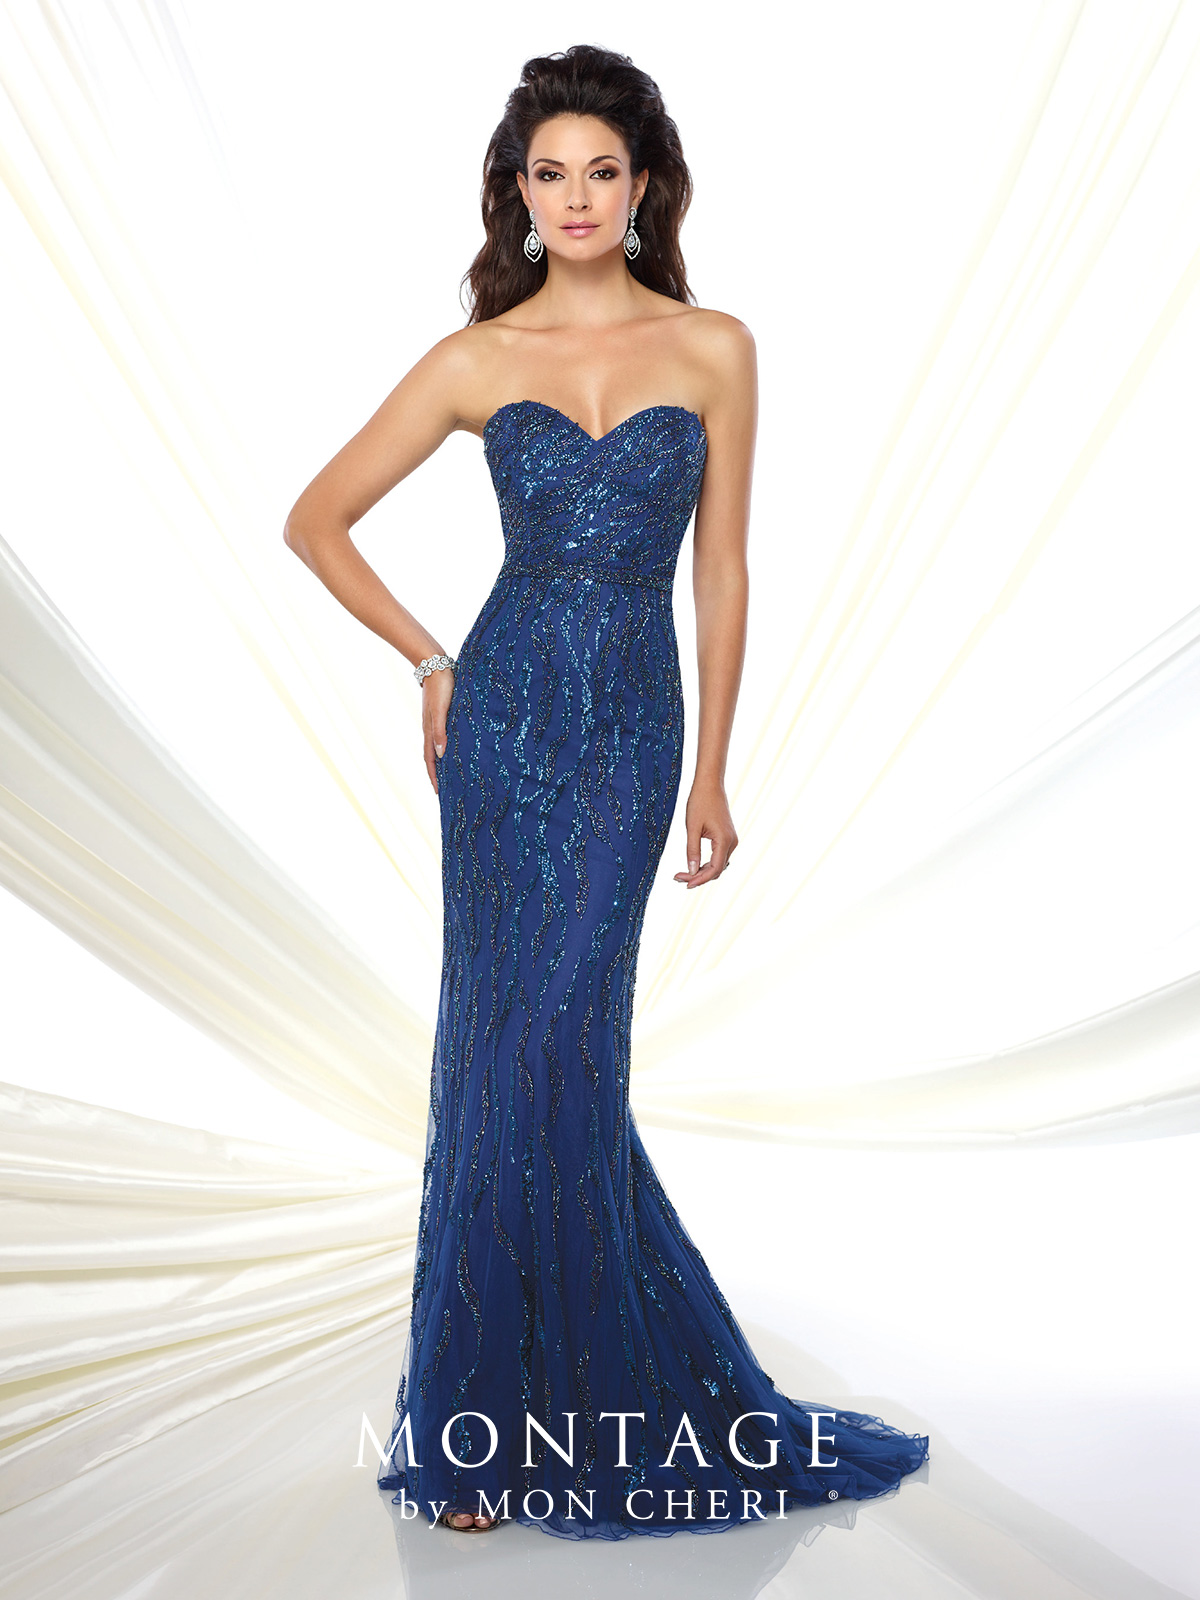 098f7d32829 Lace slim A-line gown with illusion lace three-quarter length sleeves